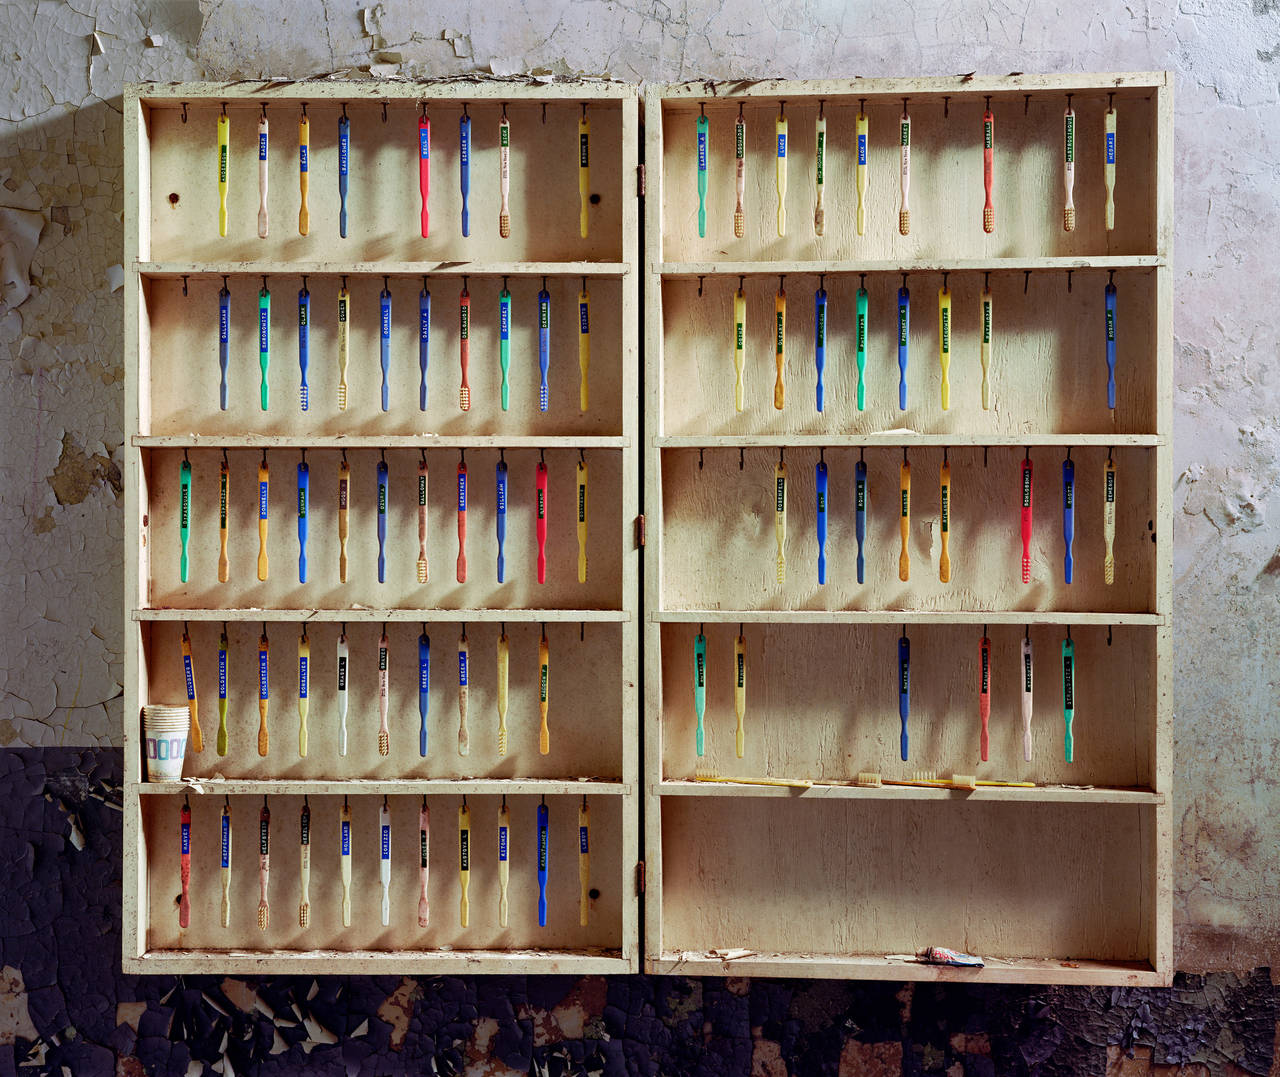 Patient Toothbrushes, Hudson River State Hospital